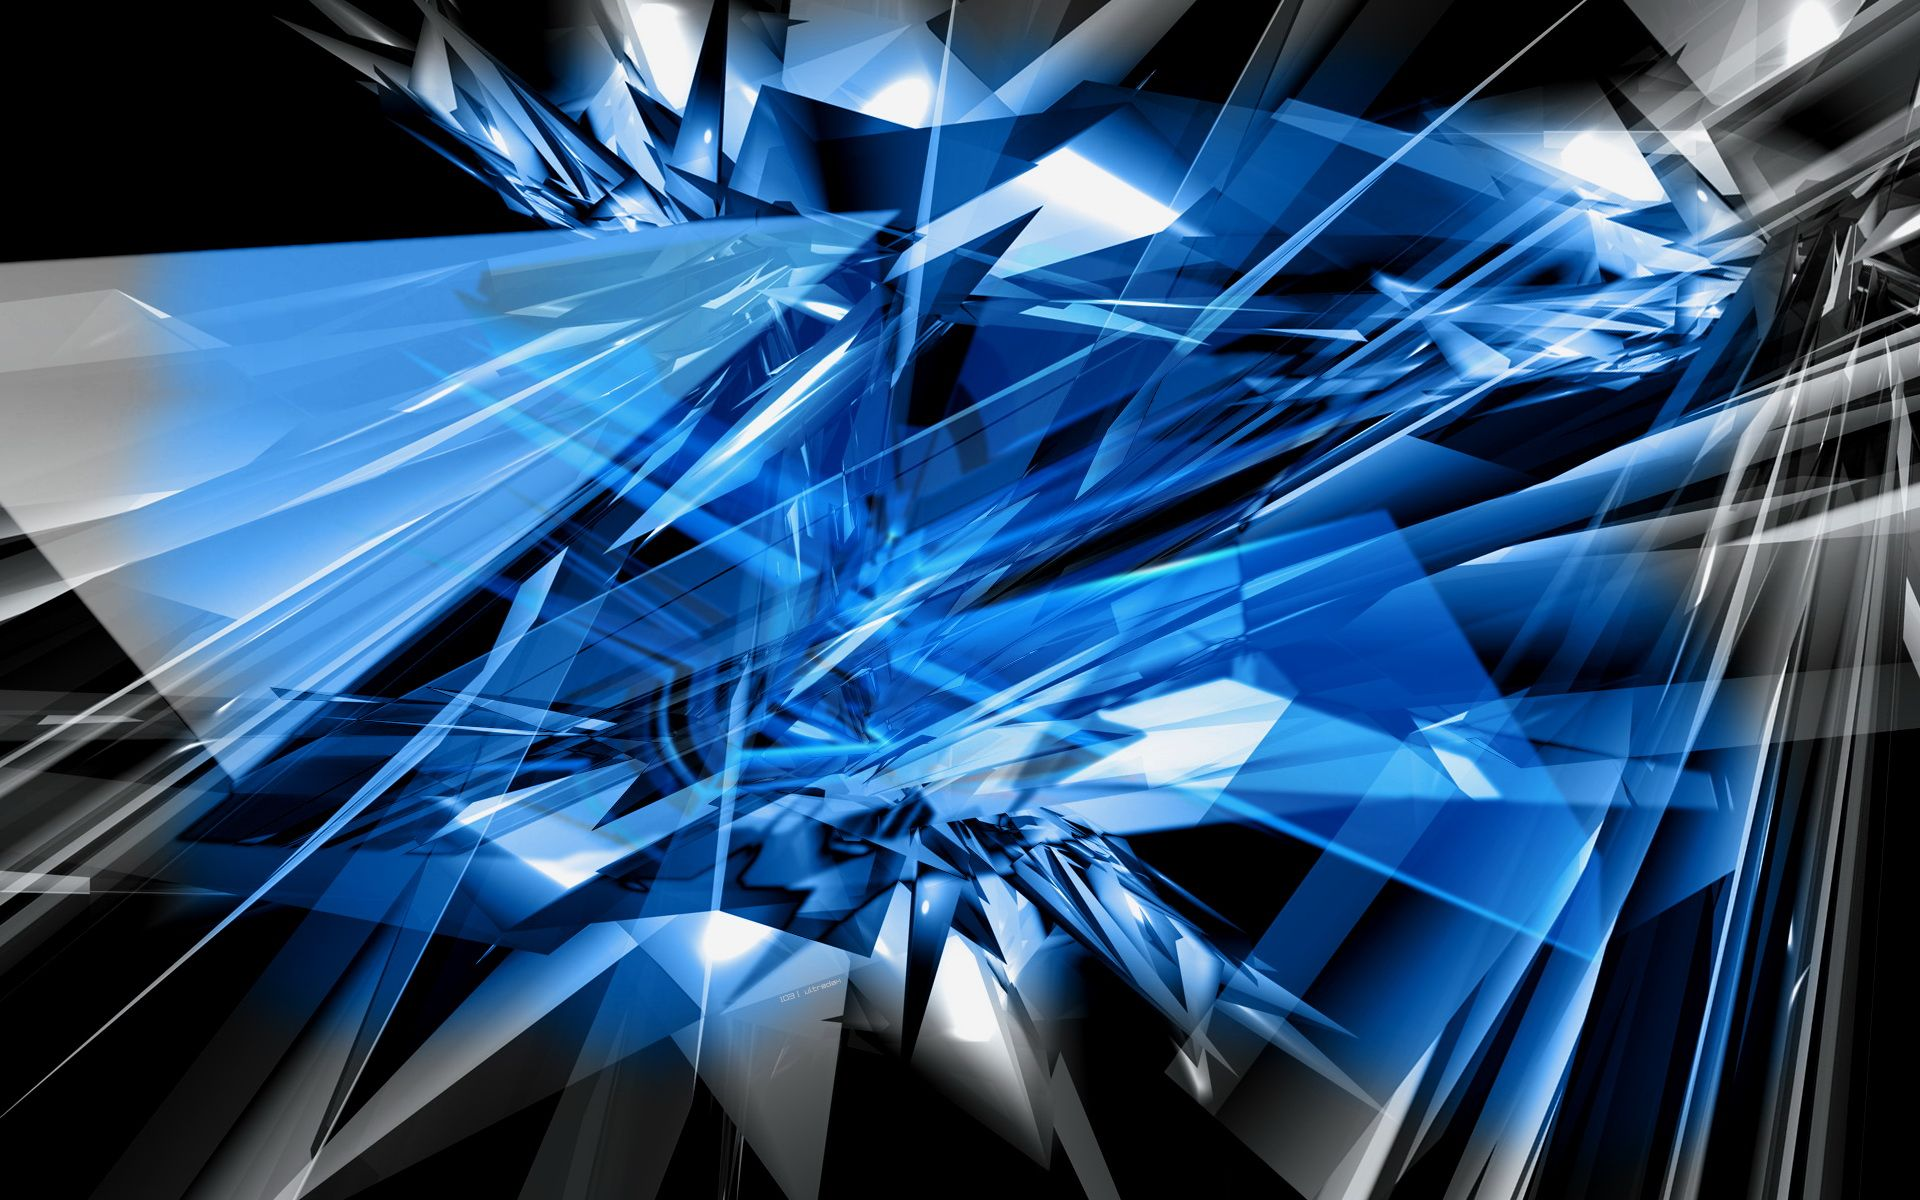 Abstract Shattered Glass 1920 1200 in Wallpapers 1920x1200